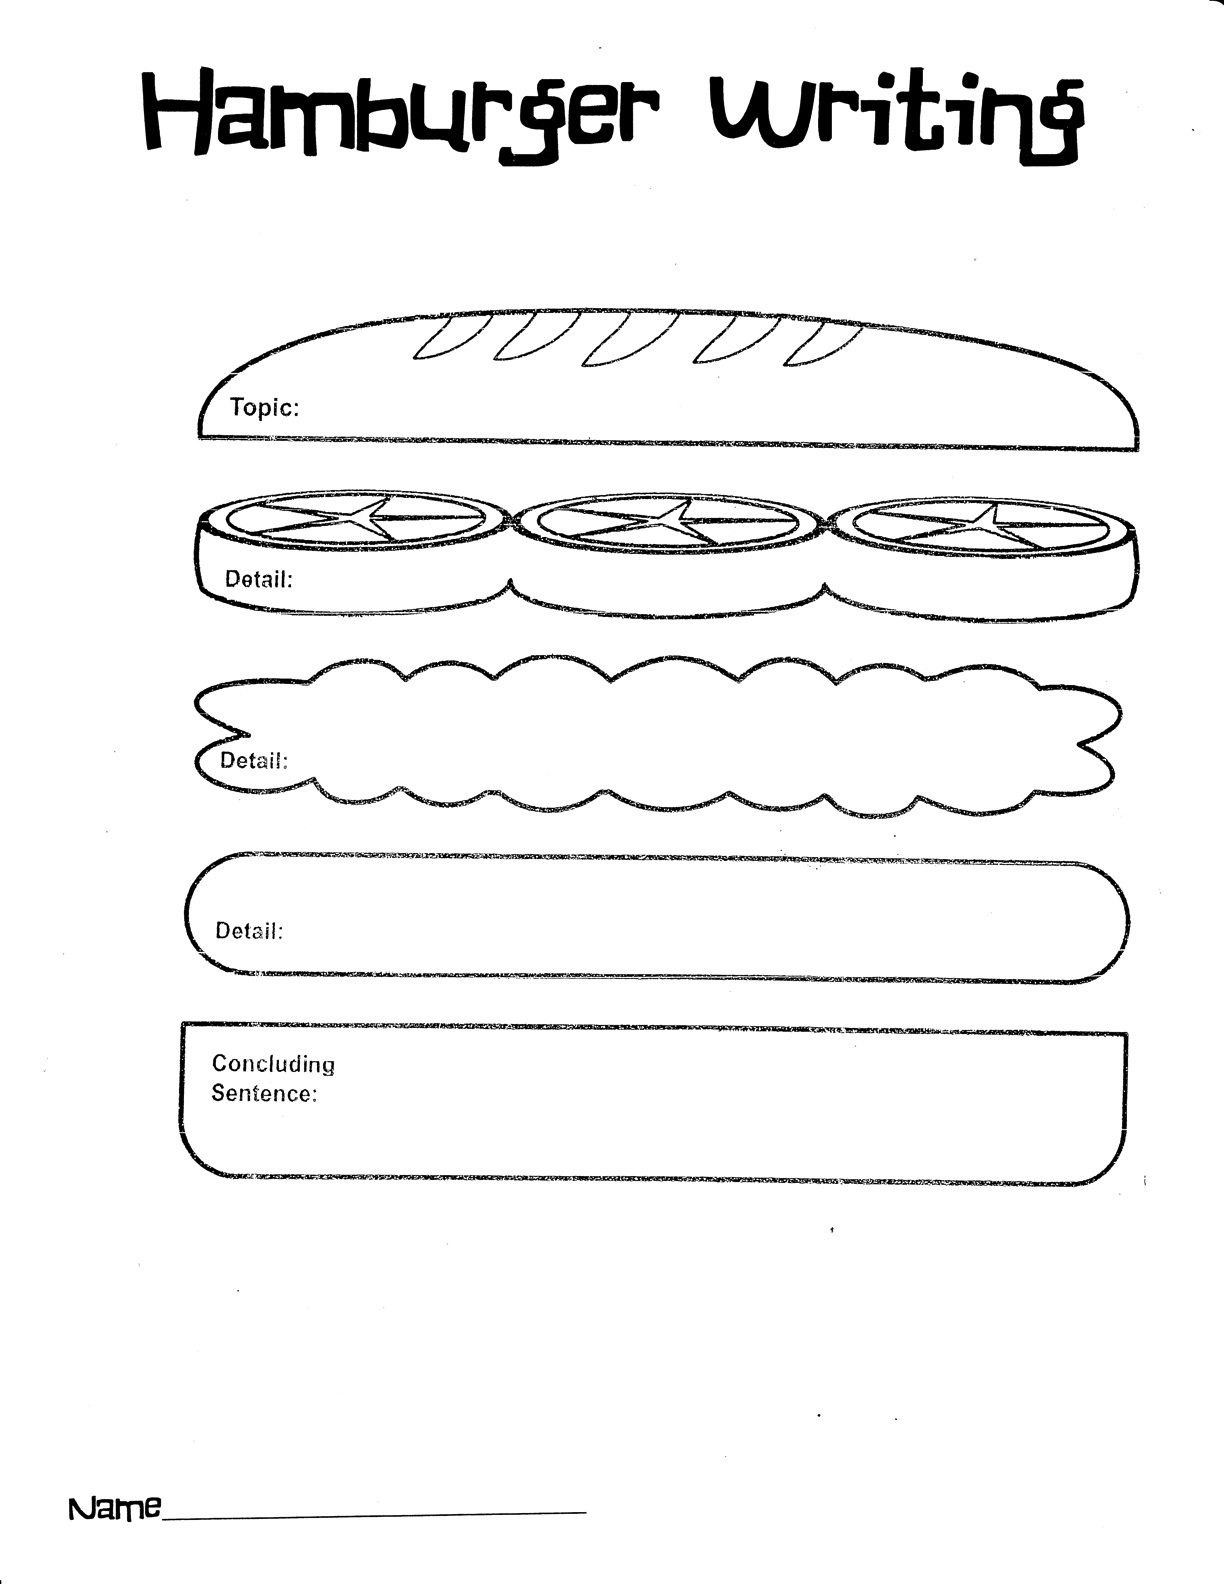 Worksheets Hamburger Paragraph Worksheet hamburger writing hamburgers graphic organisers and teacher this organizer helps the students when non fiction a is great way to structure fictio